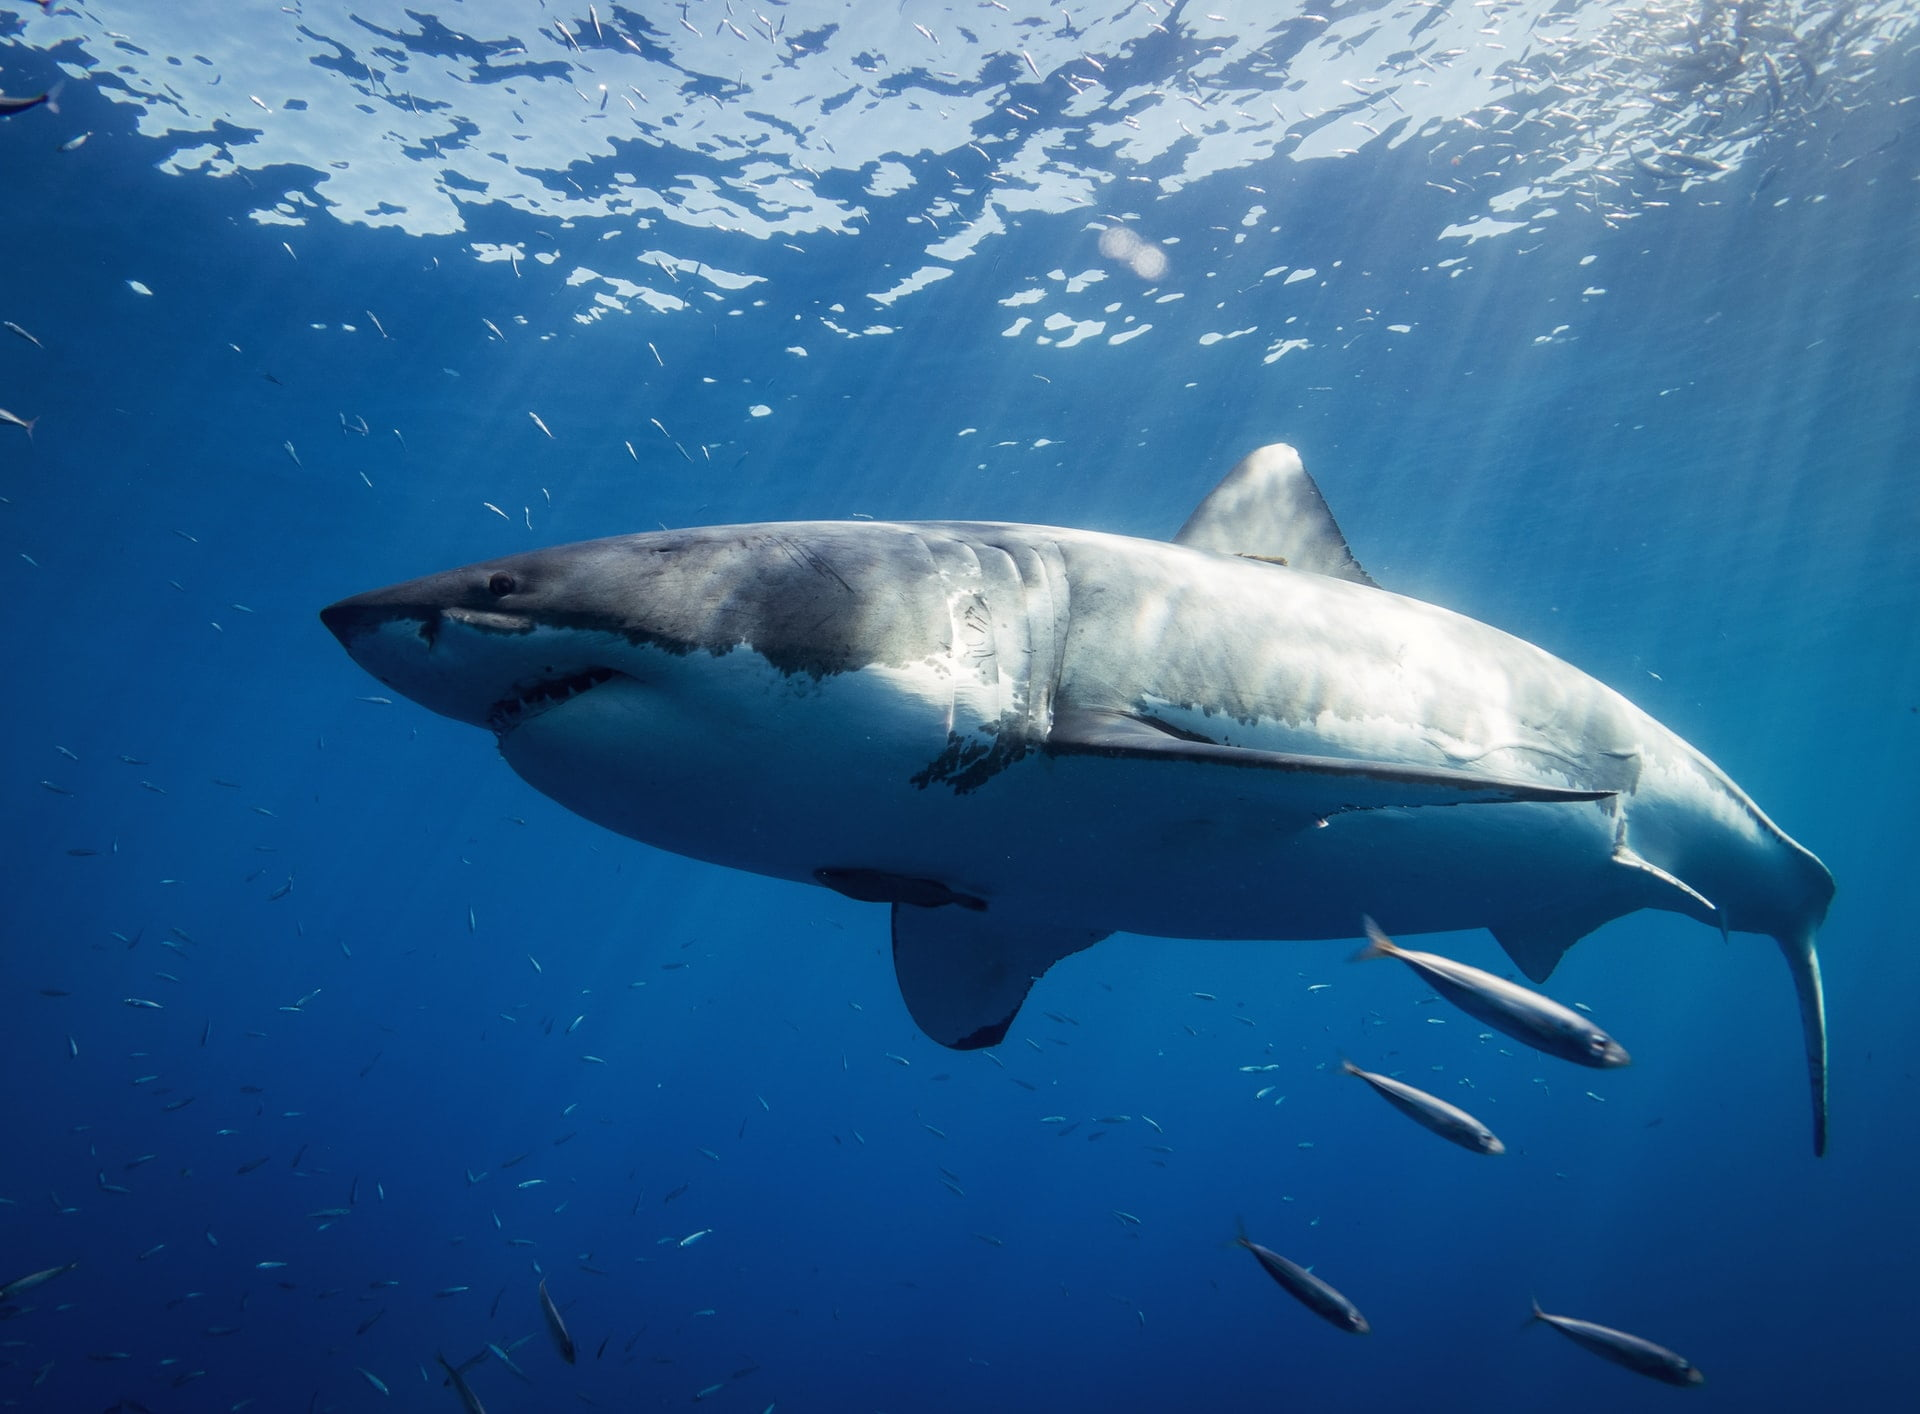 5 facts about Great White Shark